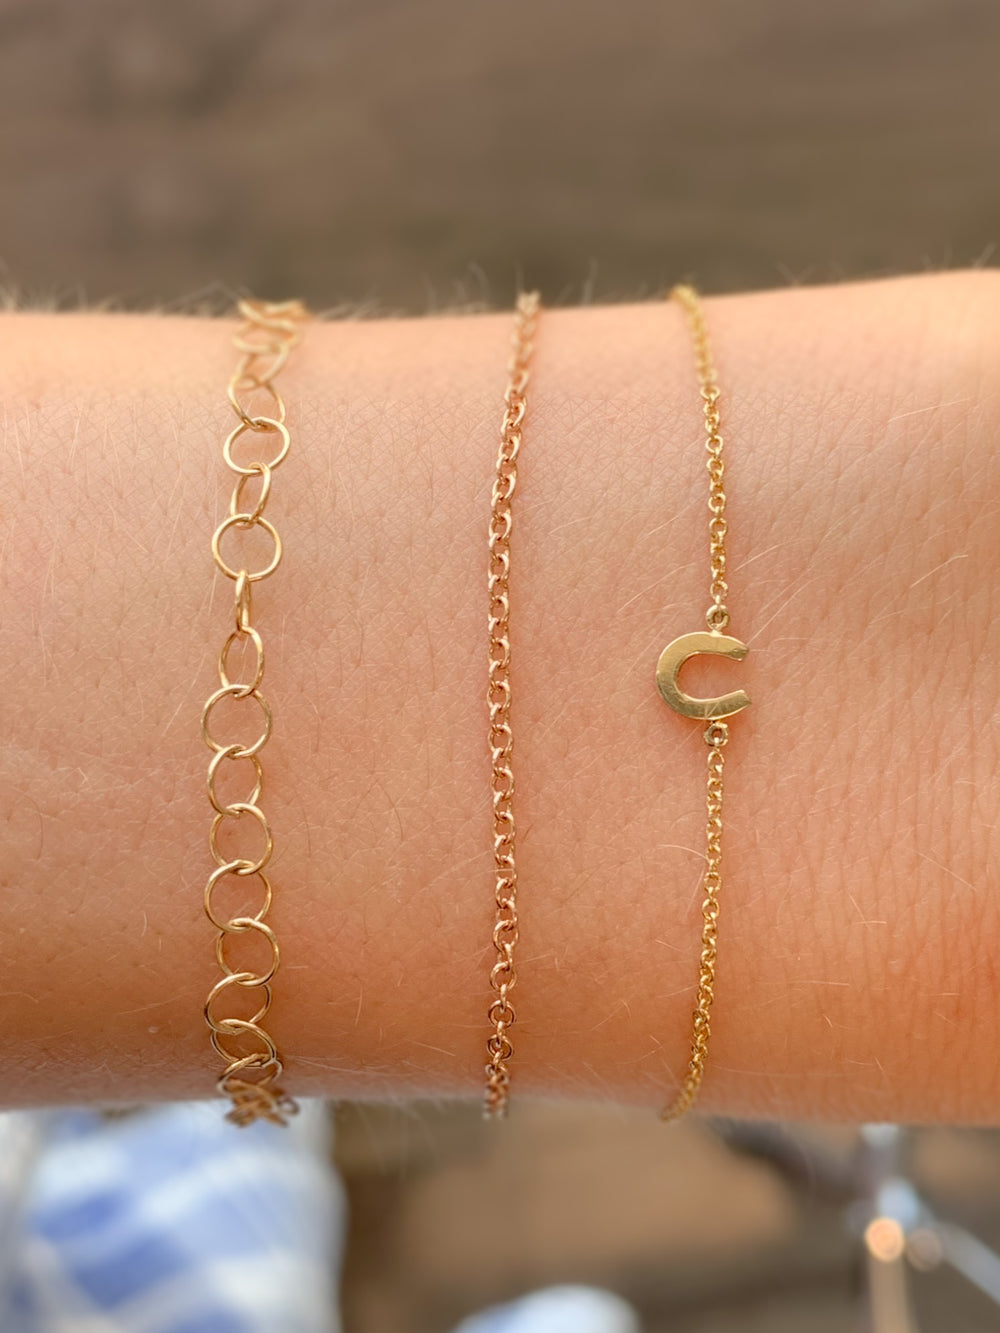 14k yellow gold bracelets with a gold horse shoe